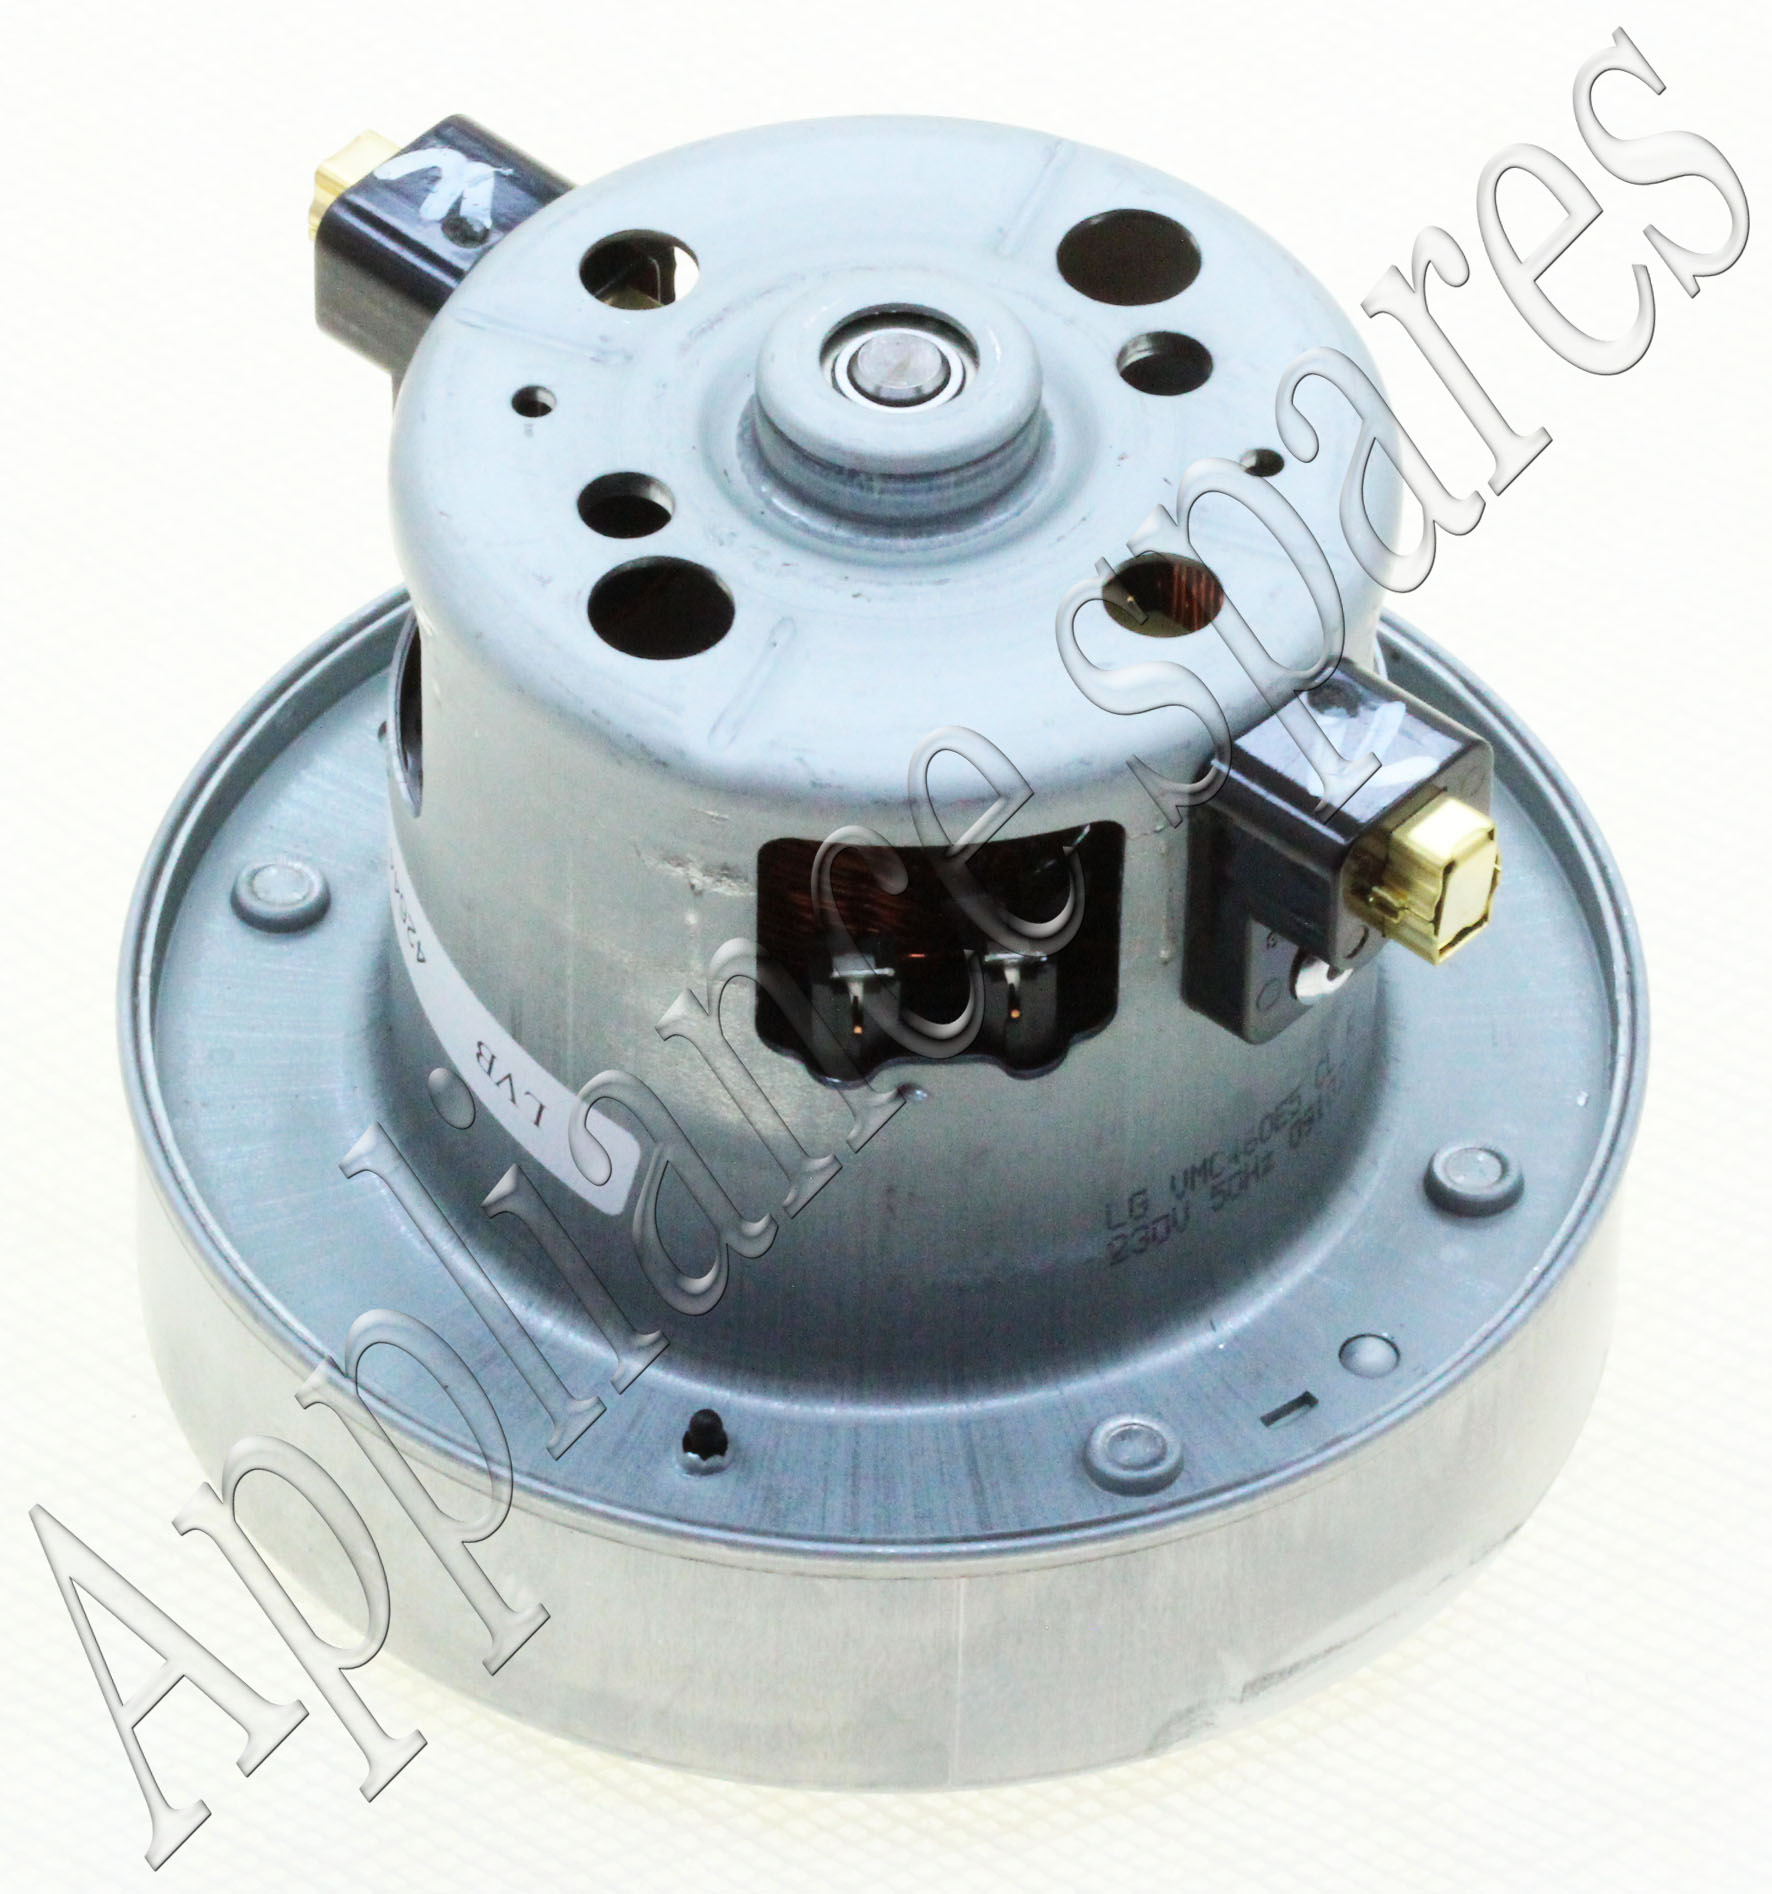 Lg vacuum cleaner motor ac discontinued lategan and Vaccum motors